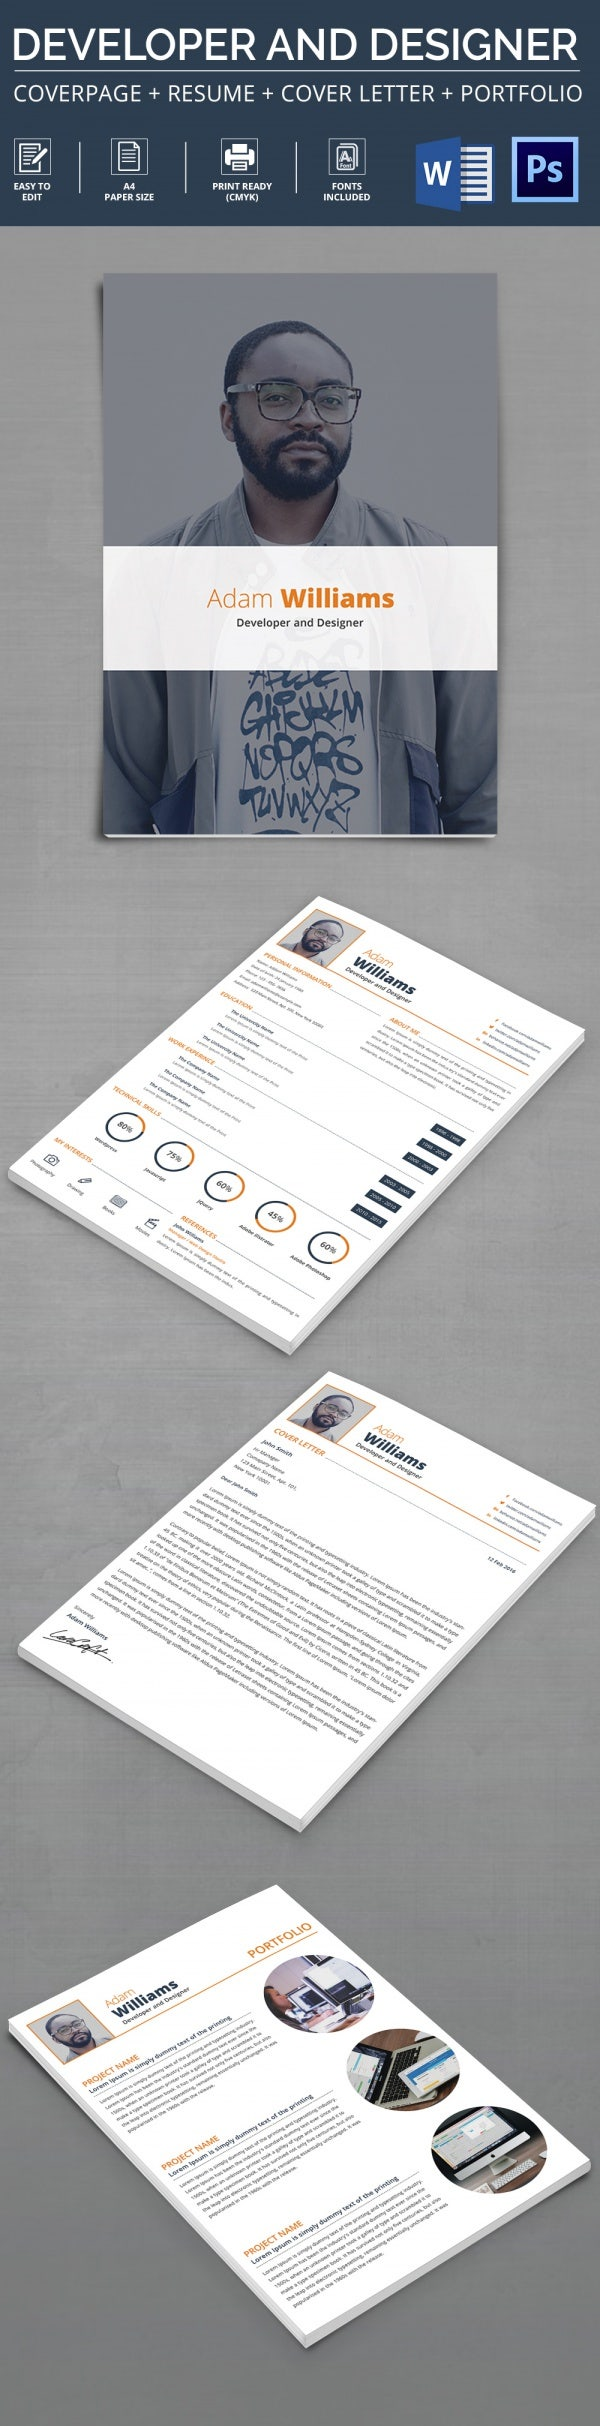 php developer resume template 7 word excel pdf format developer designer resume cover letter portfolio template